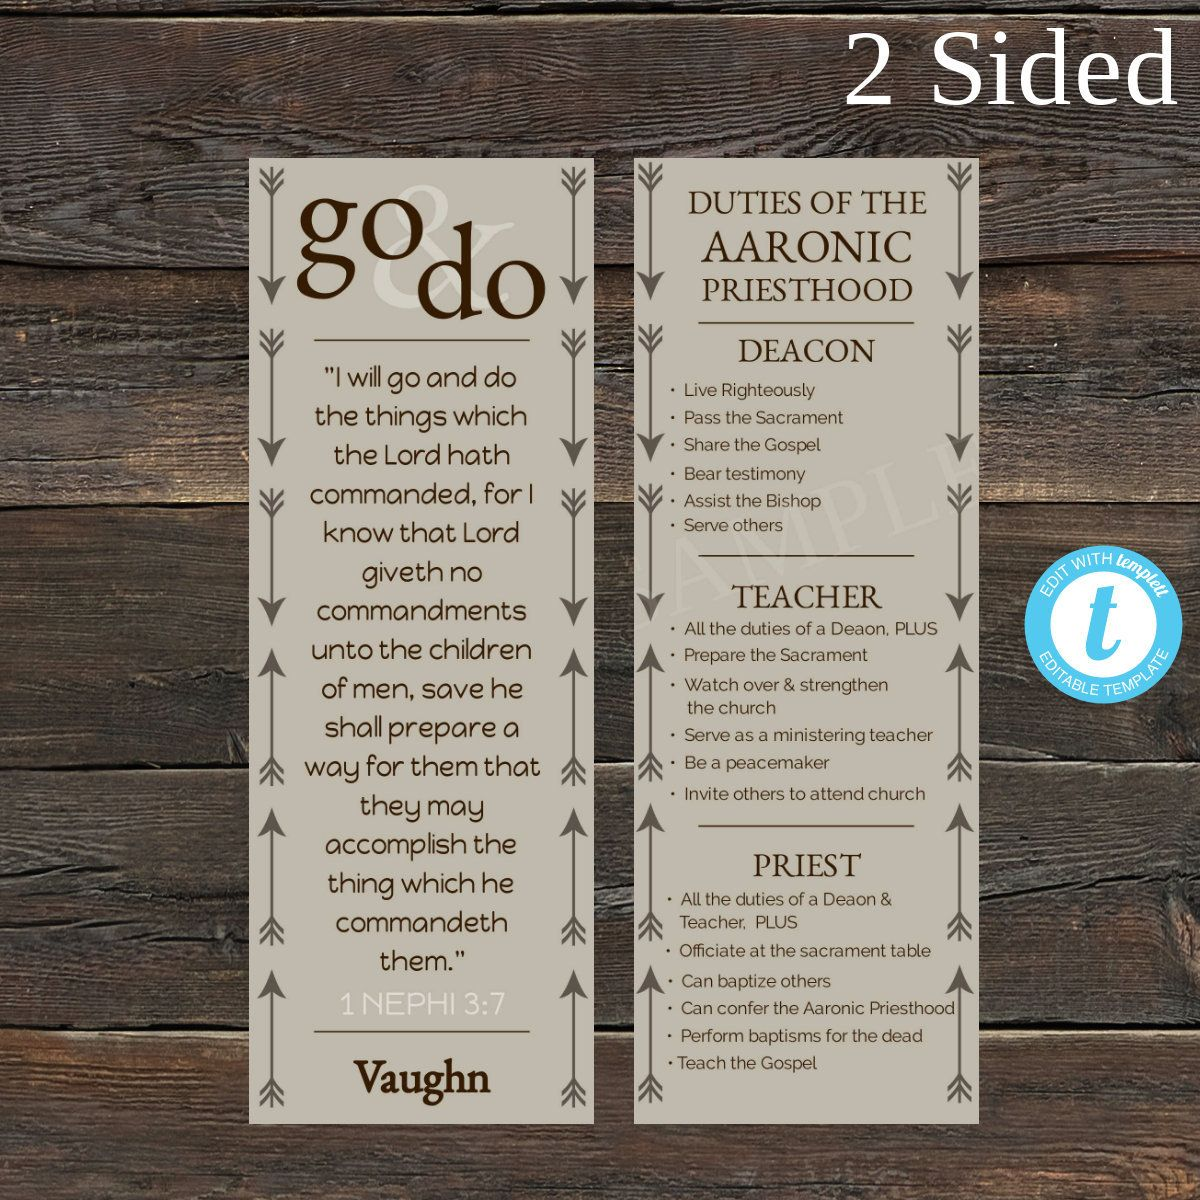 Editable Go And Do Rustic Arrows 2 Sided Bookmark Template Etsy In 2021 Youth Theme Lds Young Priesthood